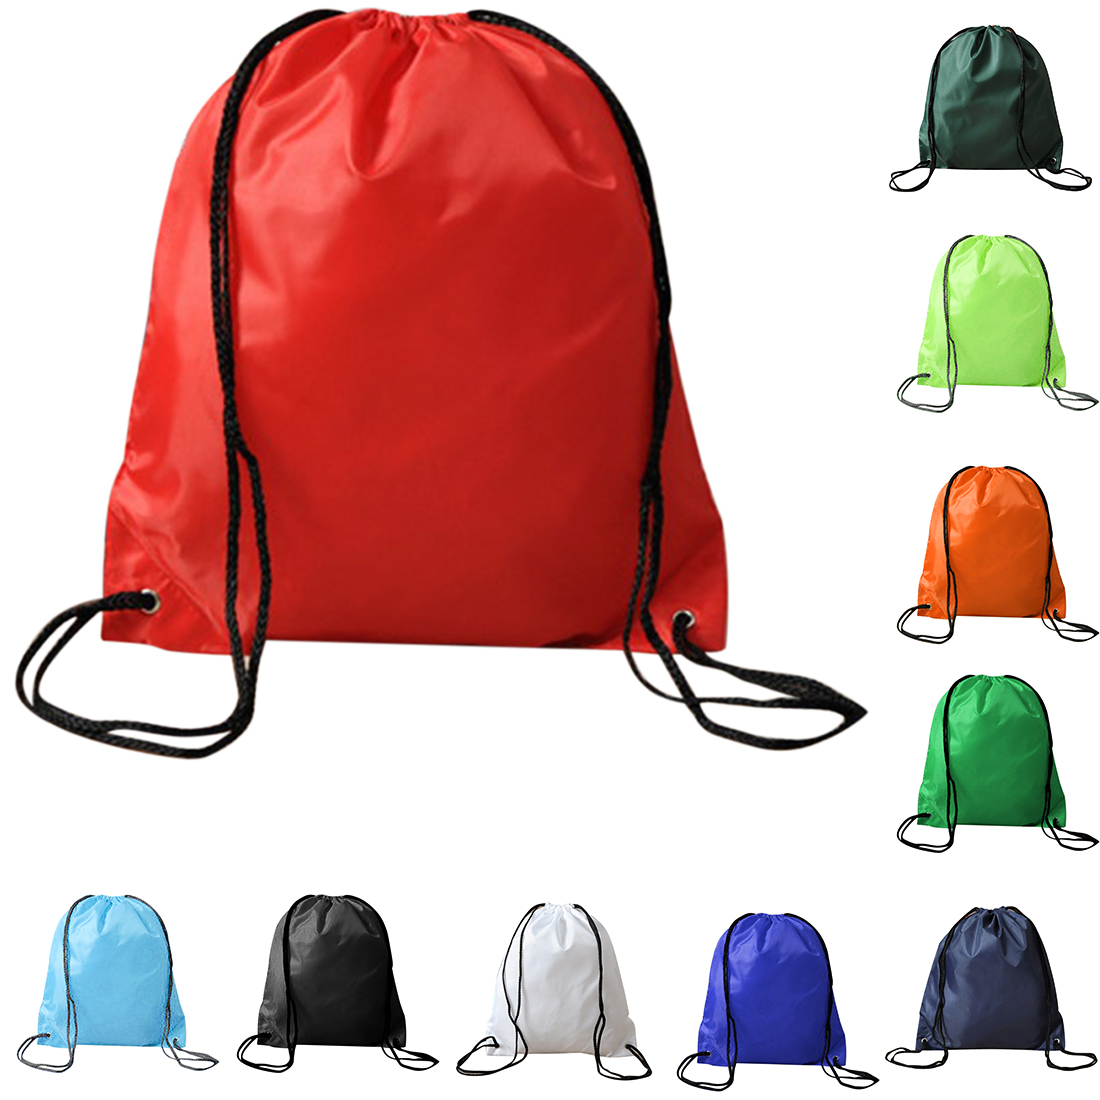 Drawstring Bags String Sack Beach Women Men Travel Storage Package Functional Backpack Plecak Worek Sznurek Gift Pouch Fashion